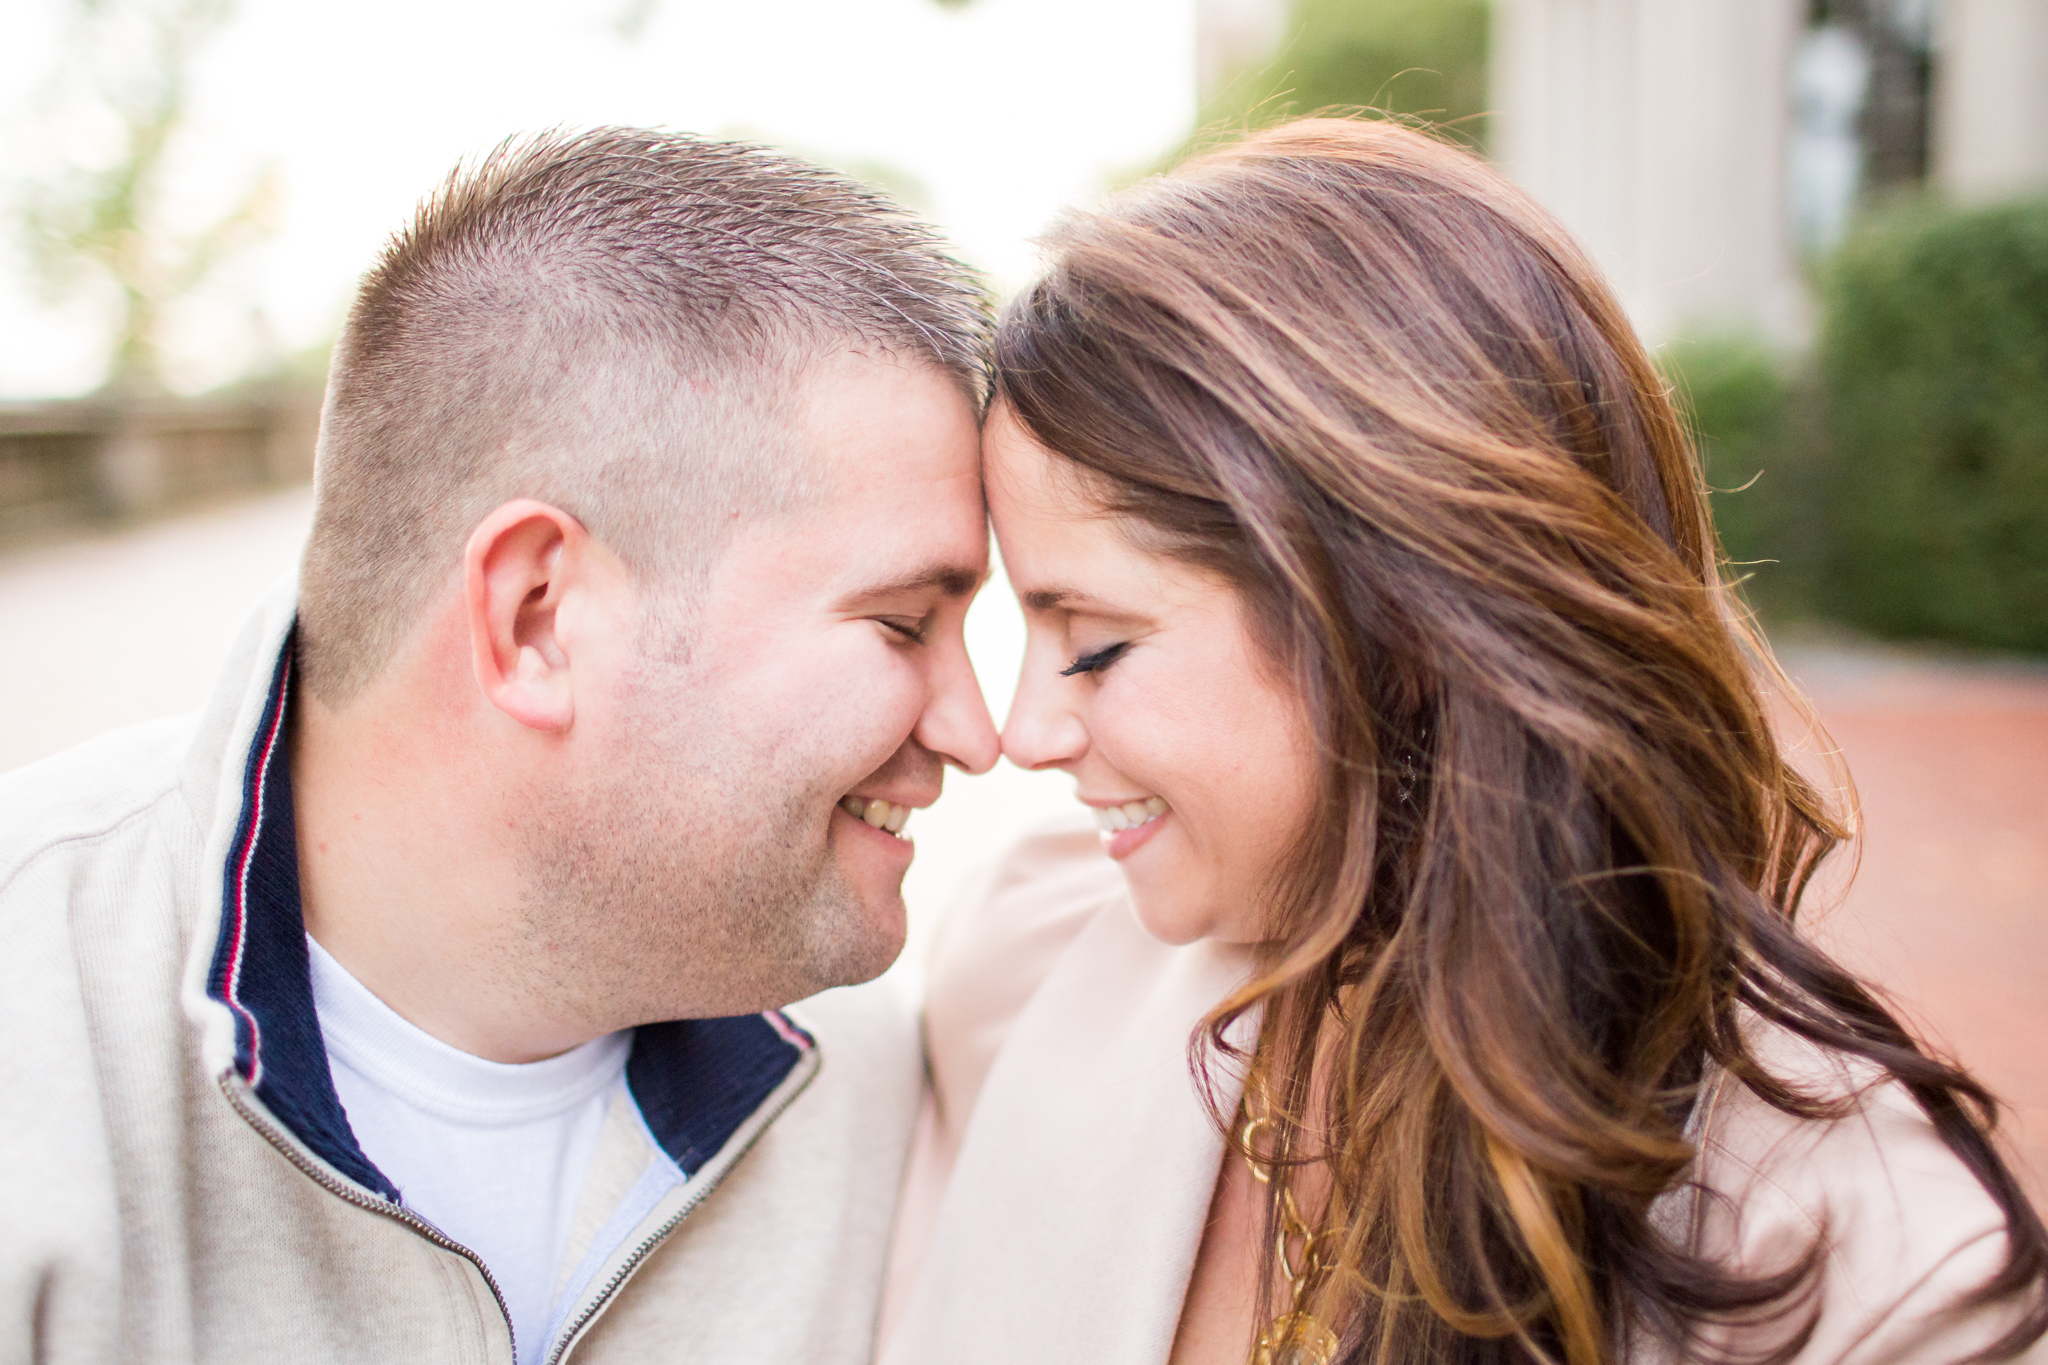 New Canaan, CT Engagement Session at Waveny Park | Luxury CT, NYC + Destination Wedding + Engagement Photographer | Shaina Lee Photography